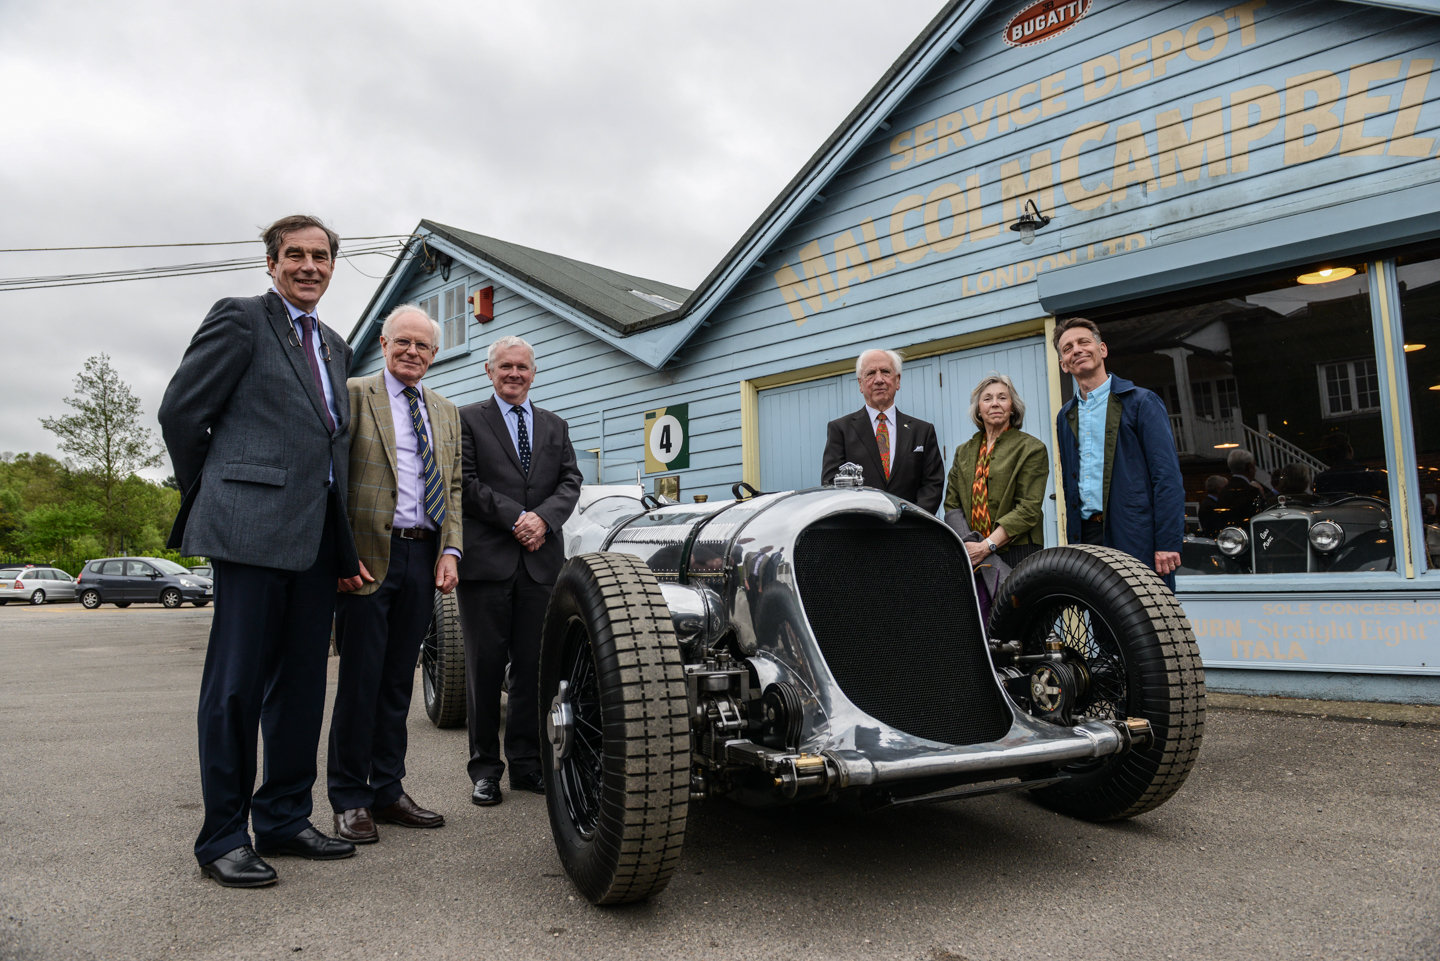 The Napier-Railton at Brooklands